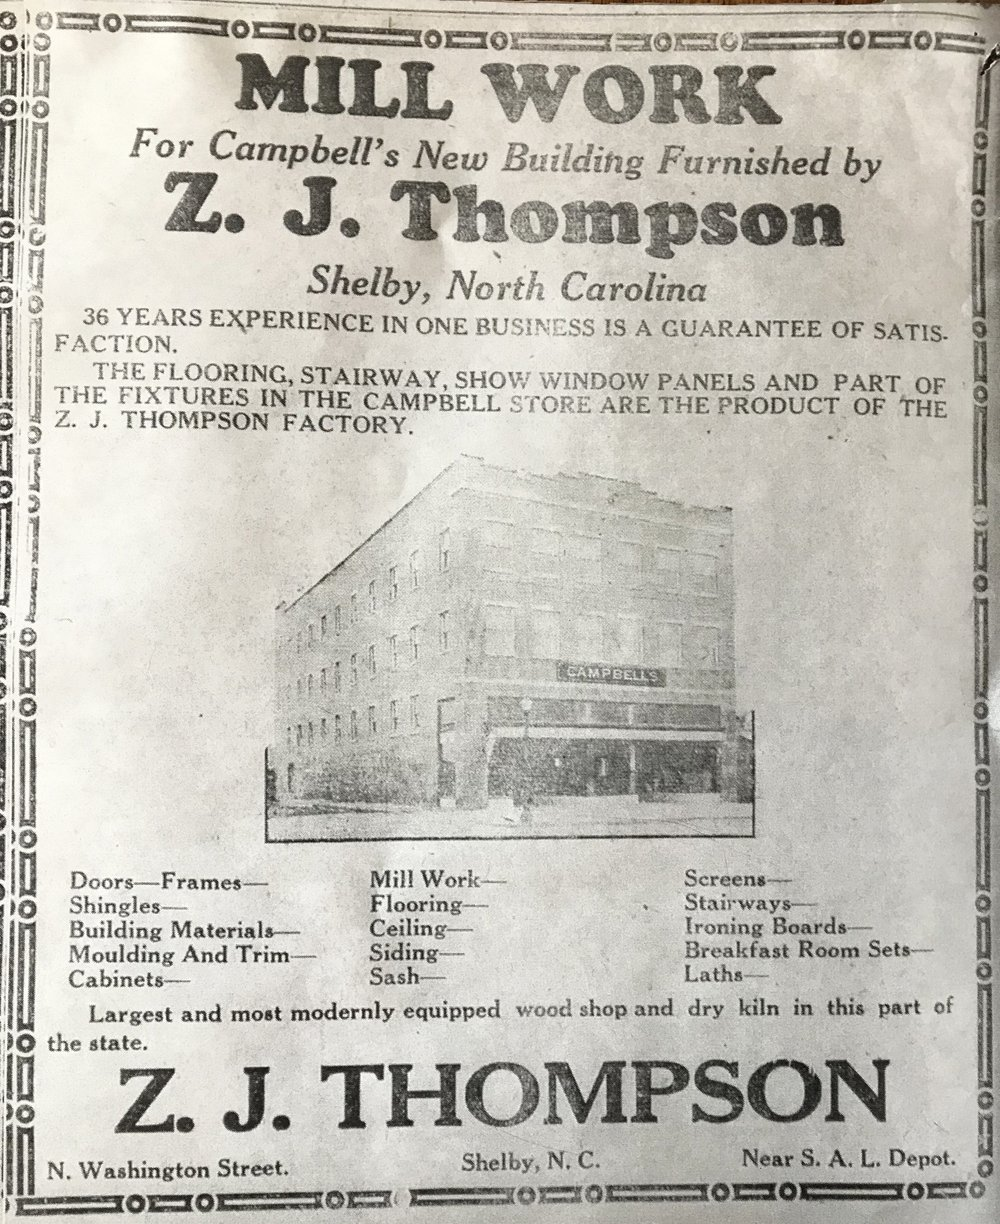 The building was immediately emblematic of local craftsmenship and a source of pride for every Shelbian who contributed work on the building. The Z. J. Thompson factory used the building as an example of their good work.